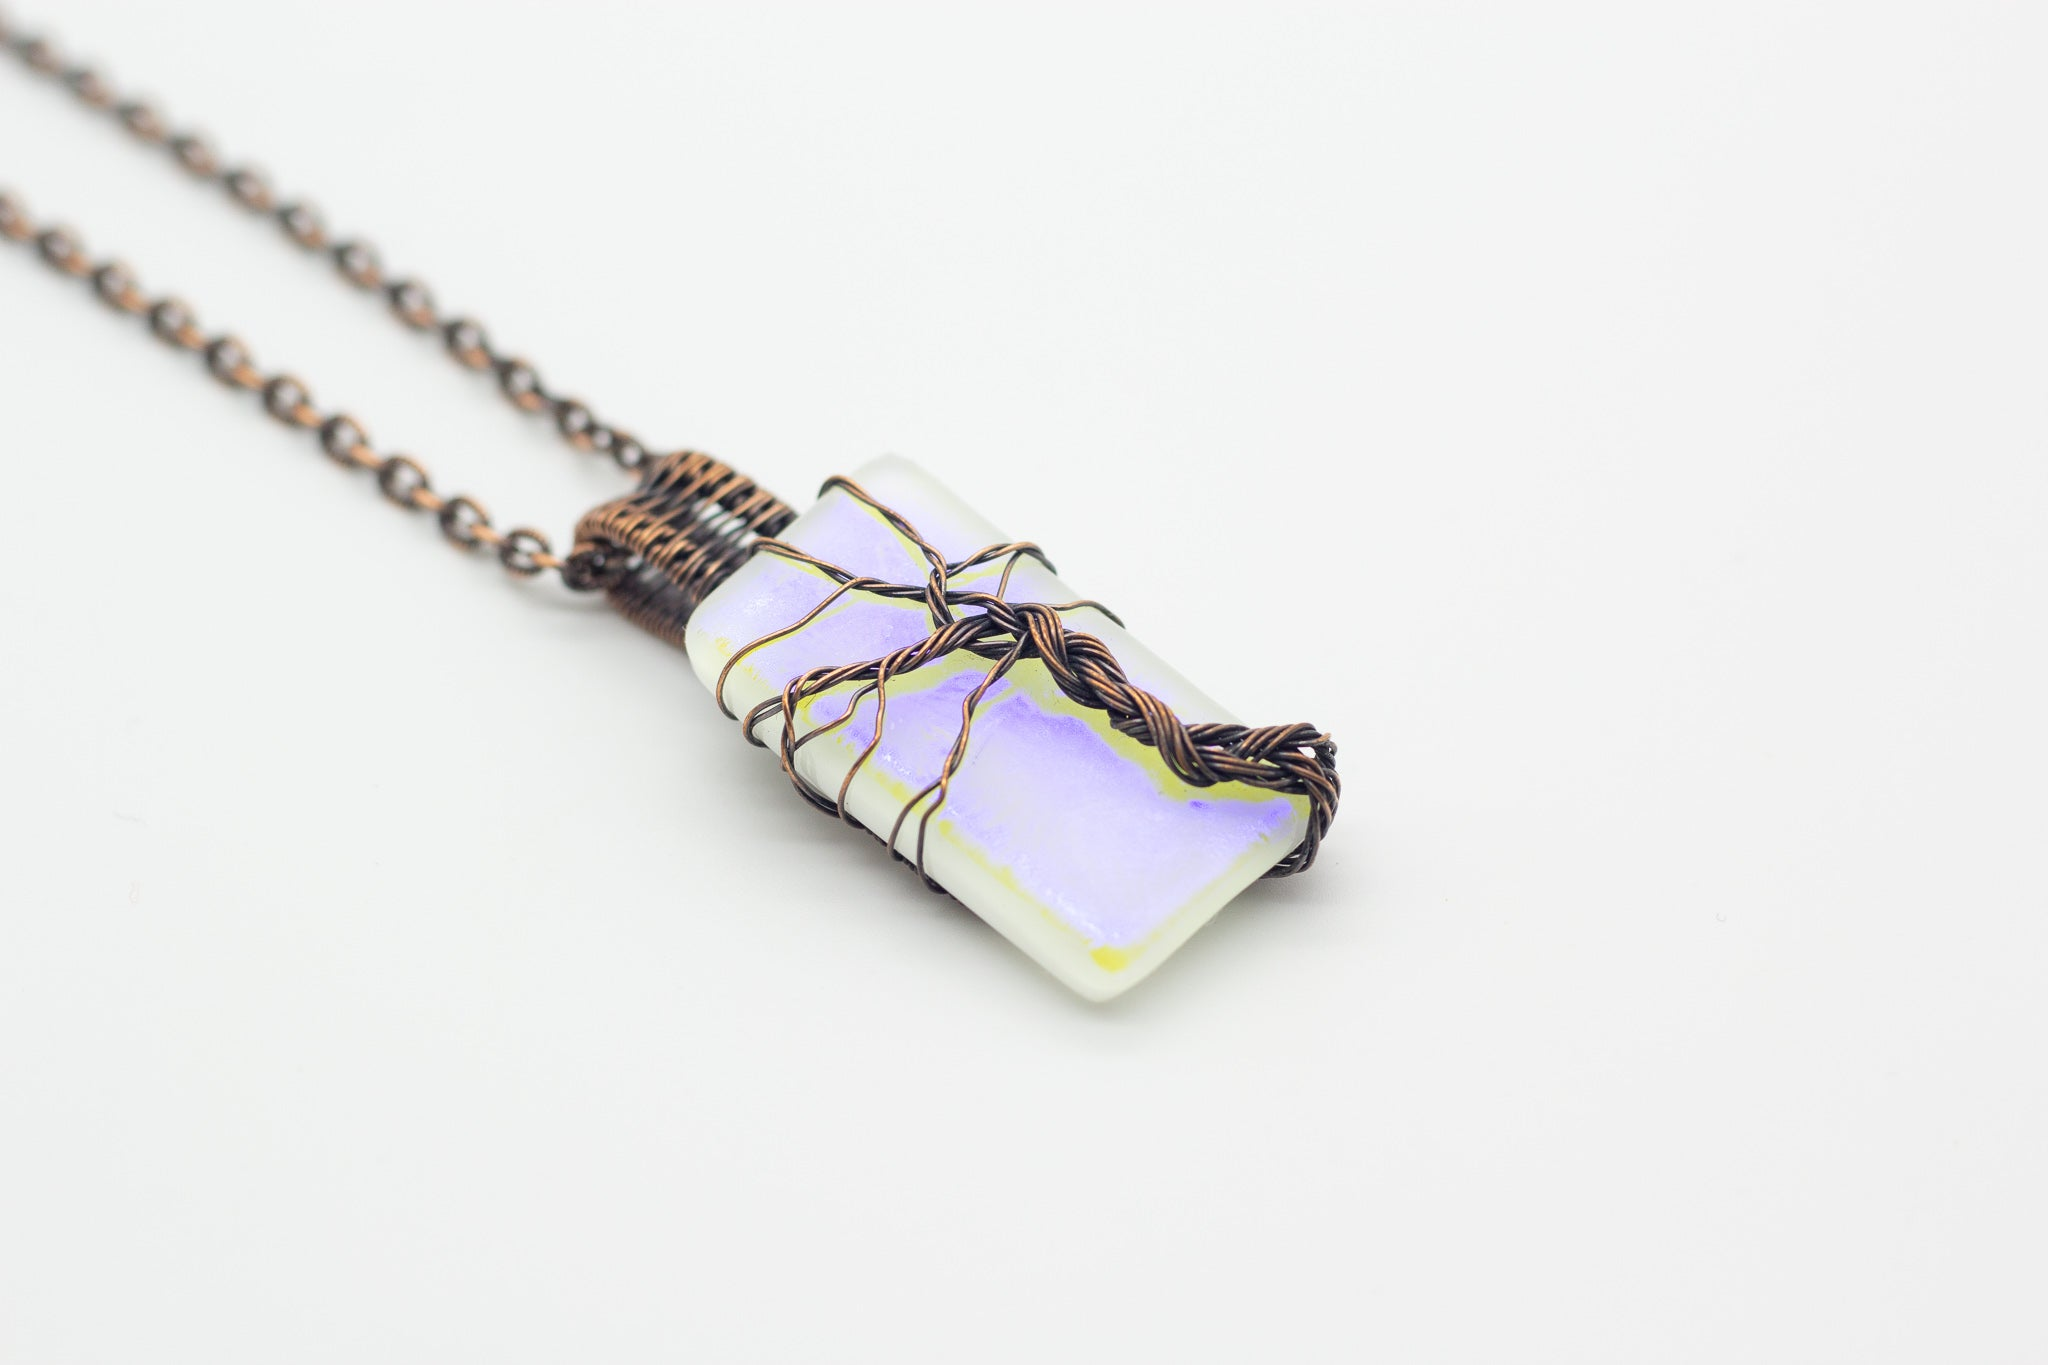 white-dichroic-fused-glass-copper-tree-of-life-pendant-nymph-in-the-woods-jewelry